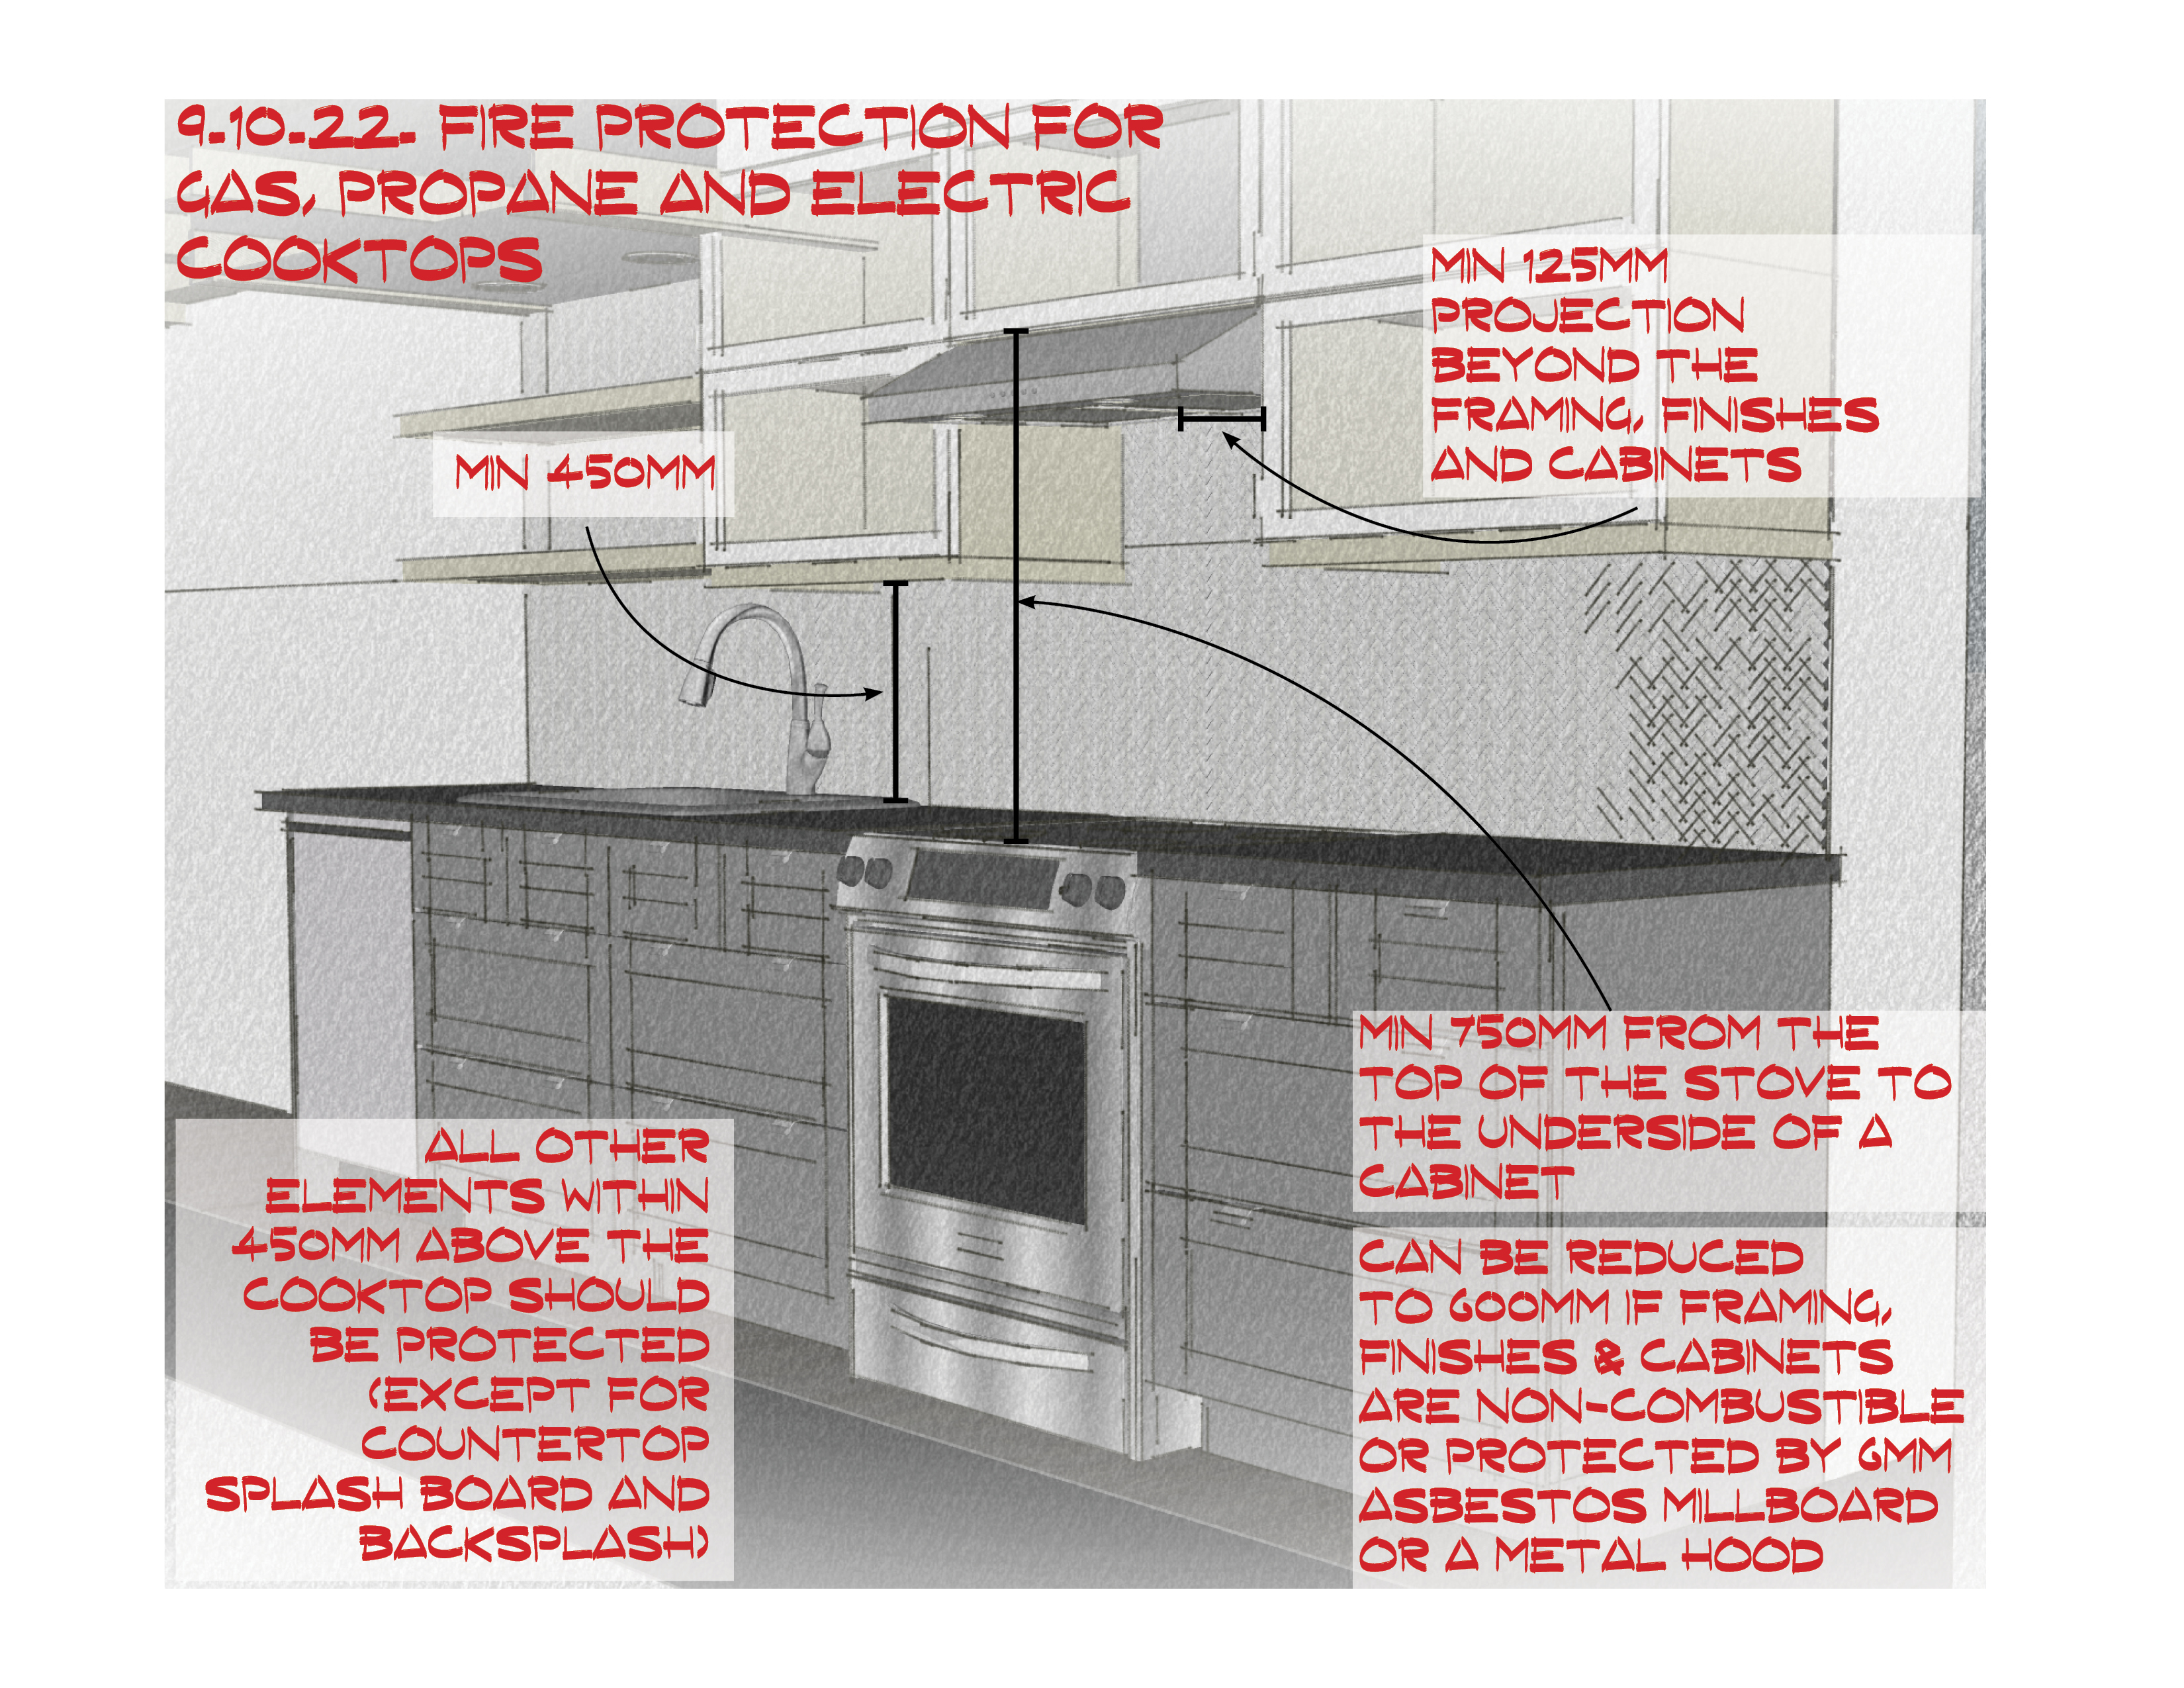 - BUILDING CODE HACKS: FIRE PROTECTION FOR COOKTOPS